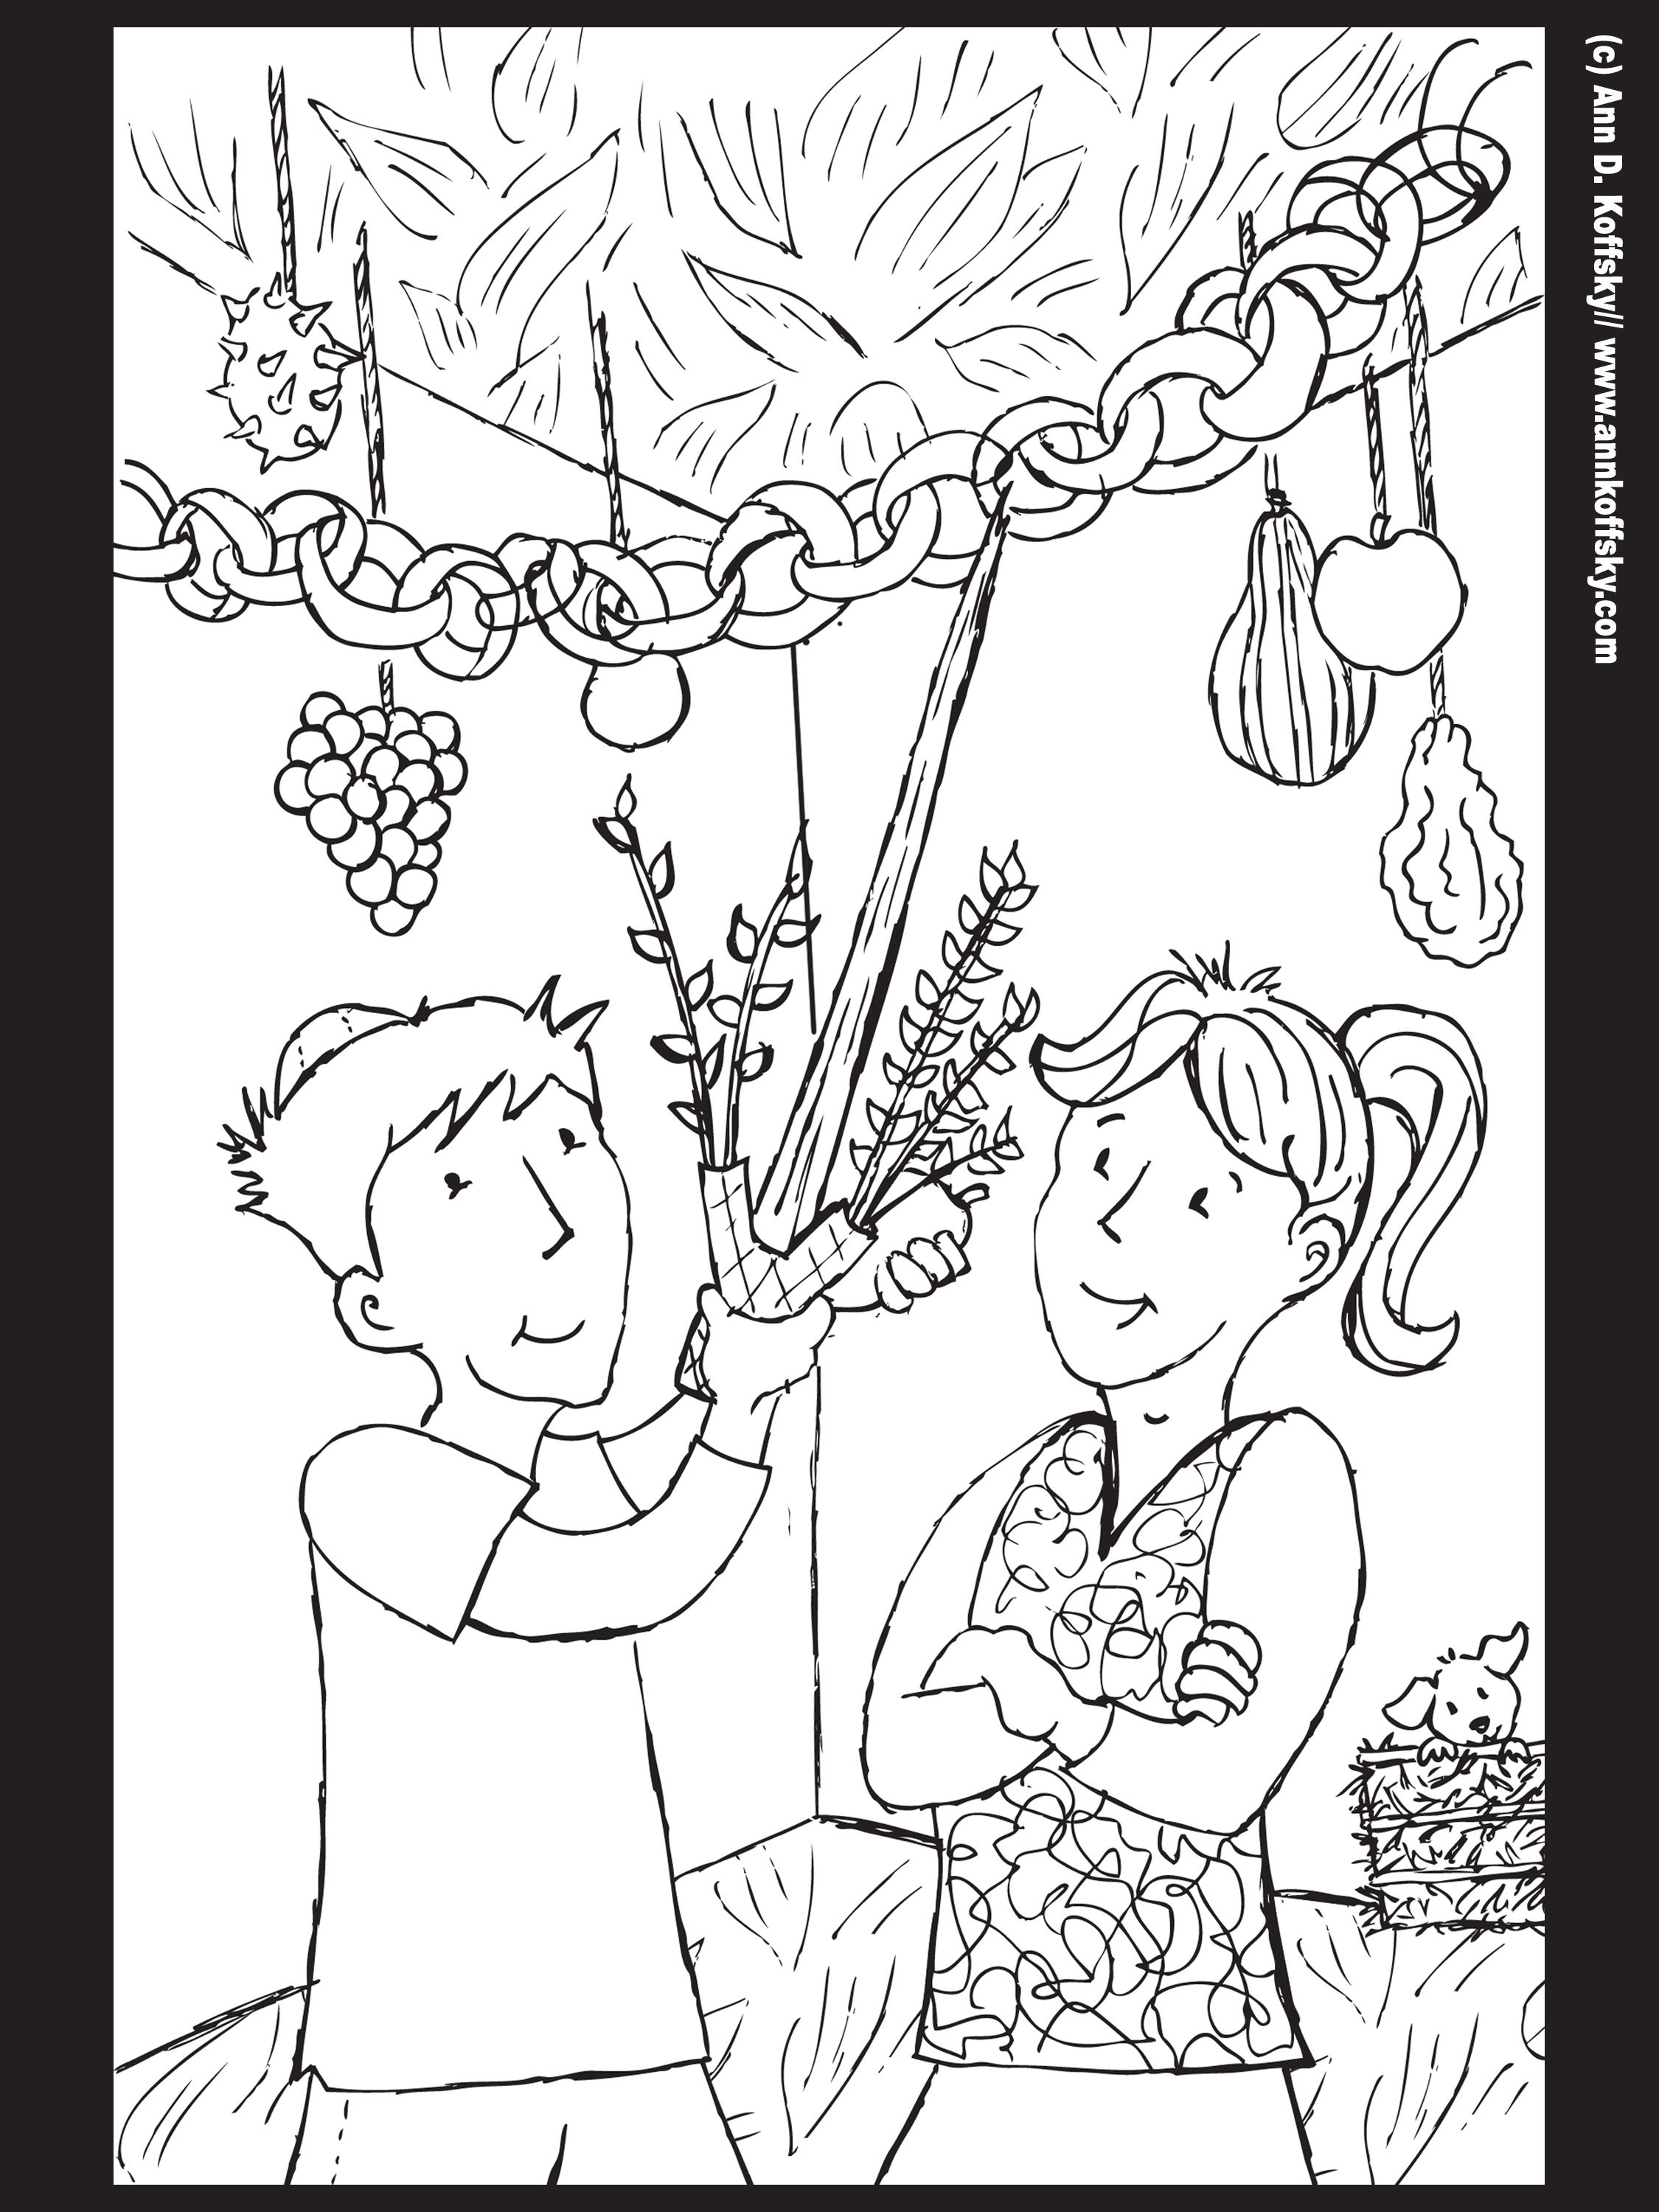 Sukkot coloring page | Celebrating the Feasts! | Pinterest ...